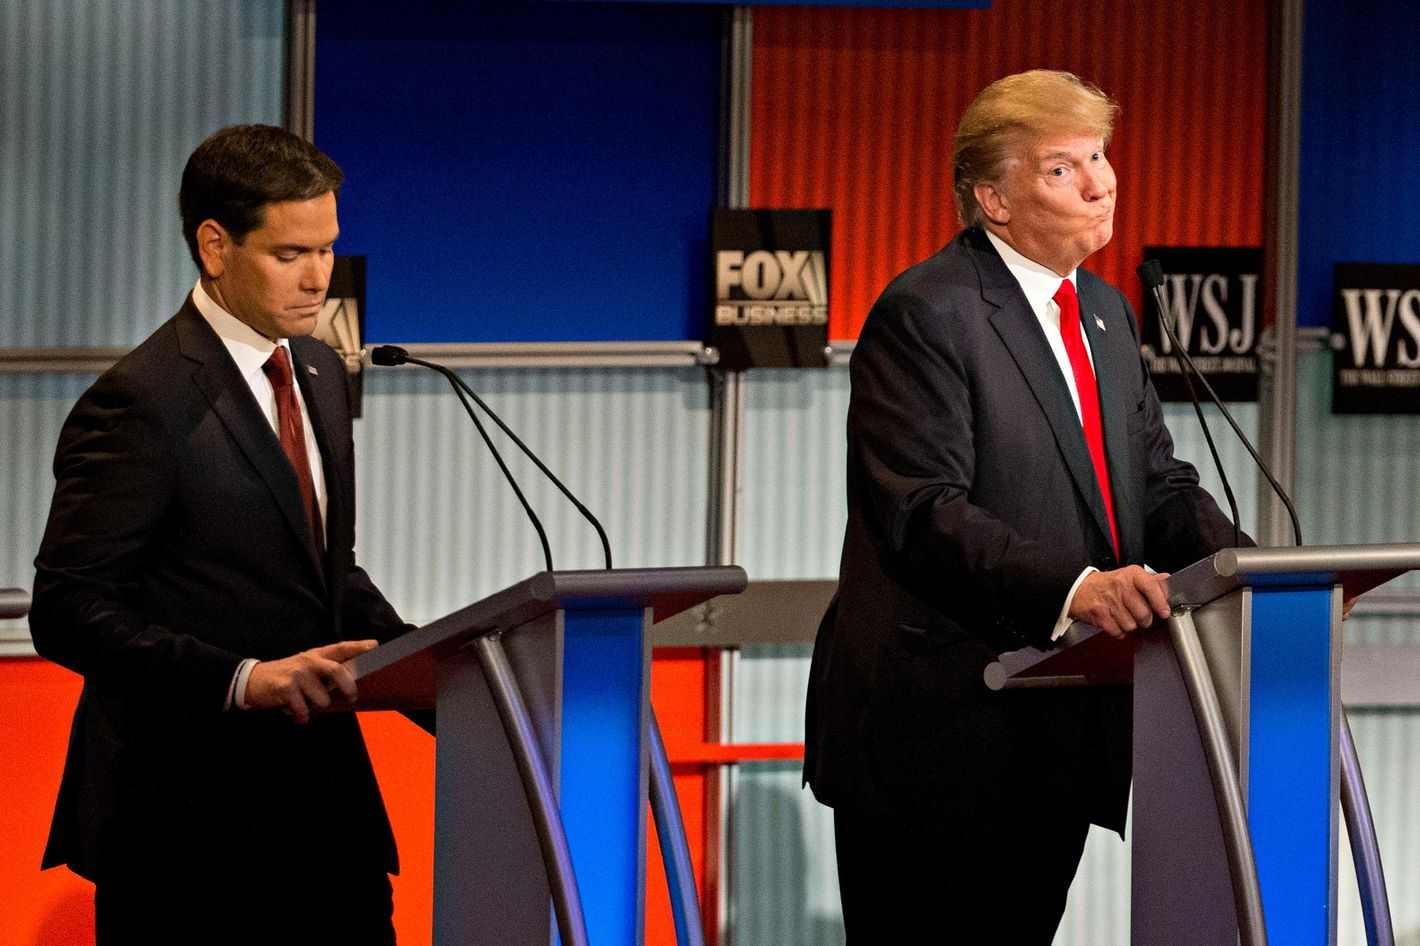 Fox Business And The Wall Street Journal Host Republican Primary Debate